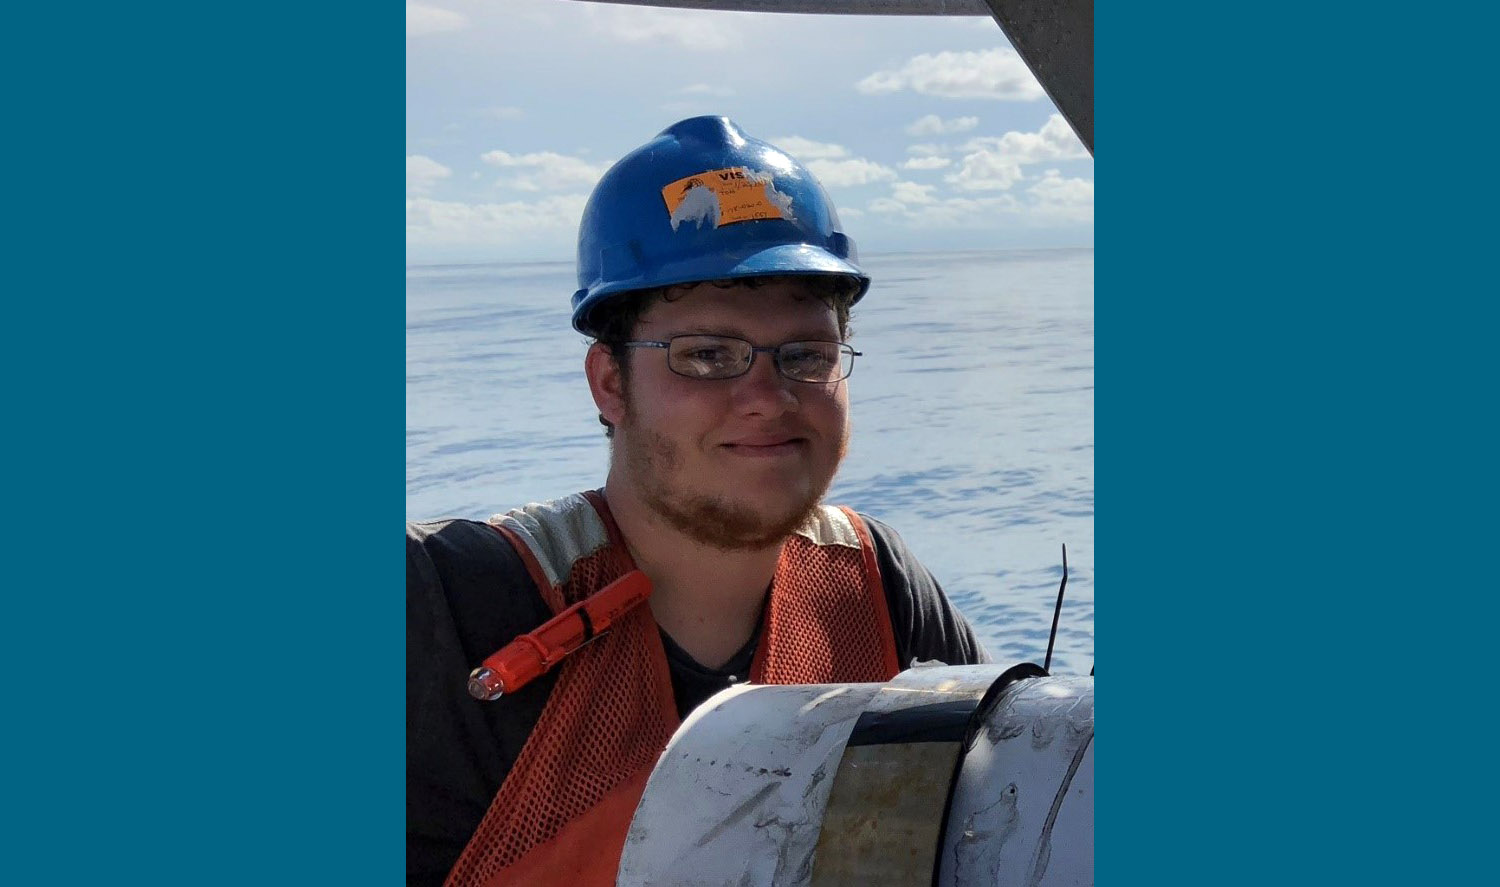 USFCMS intern Sebastian DiGeronimo for being awarded a competitive UNOLS MATE paid internship for 2019.